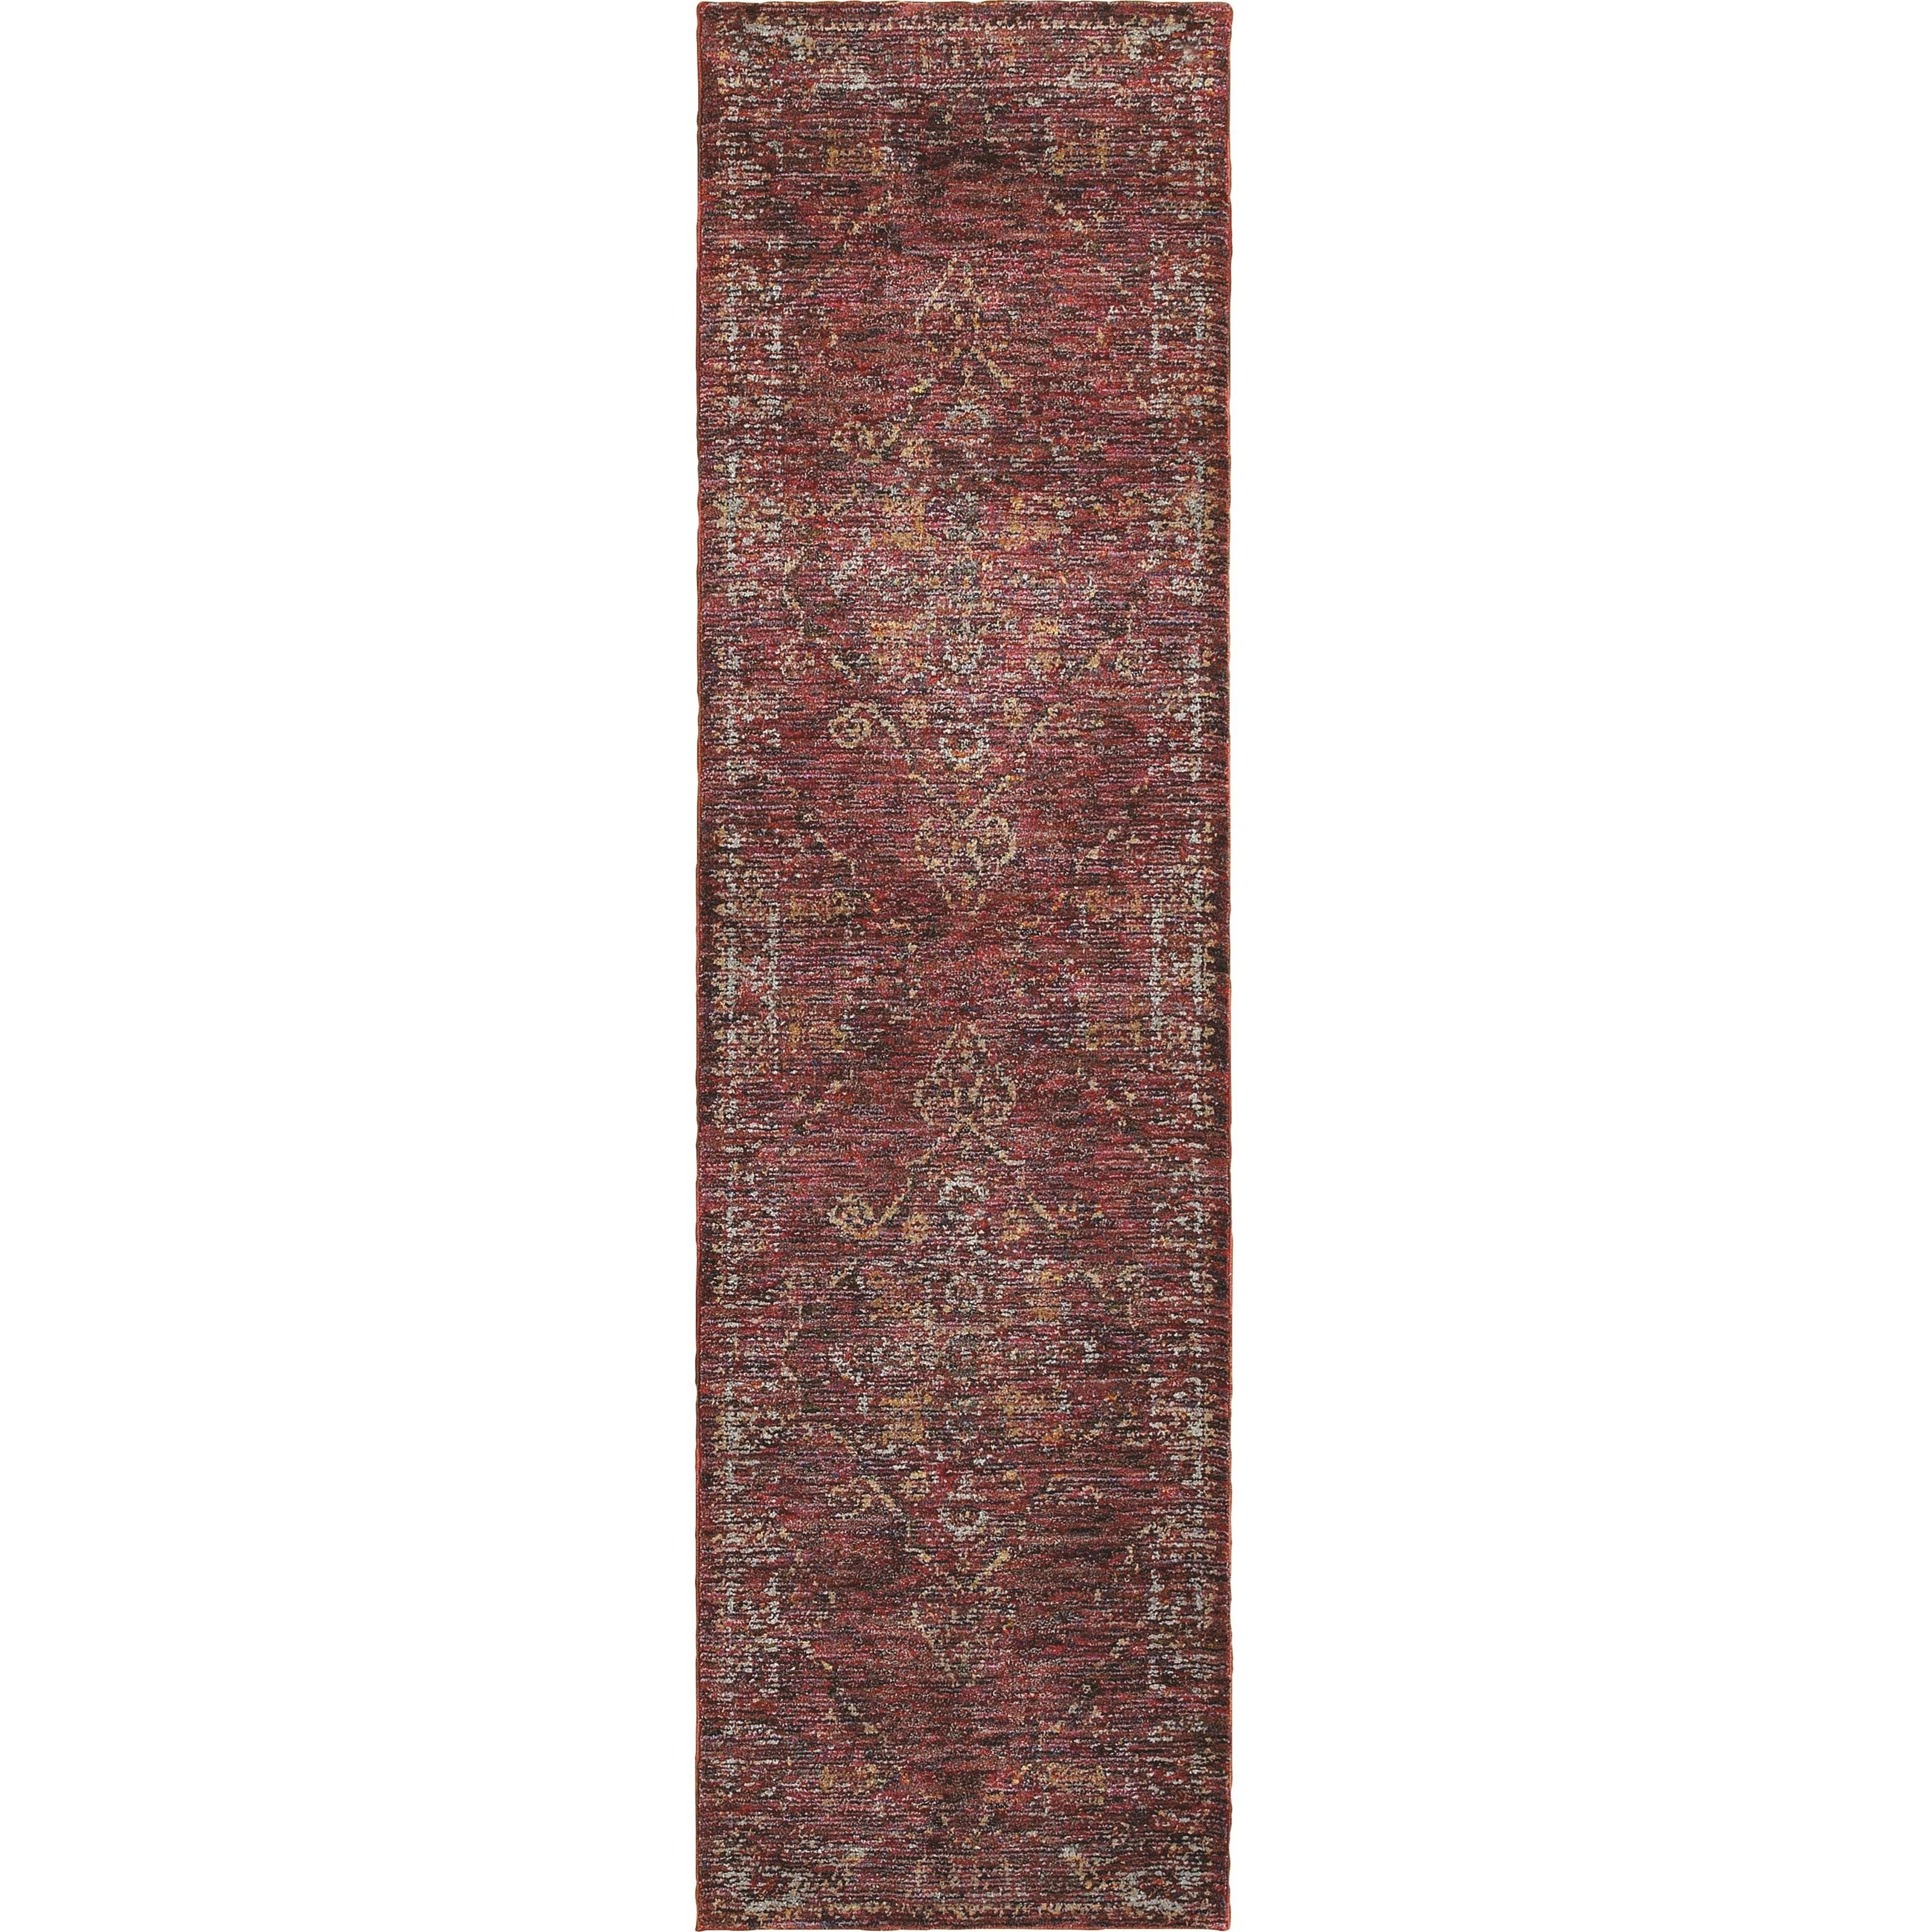 "Andorra 2' 3"" X  8' 0"" Casual Red/ Gold Runner Rug by Oriental Weavers at Steger's Furniture"